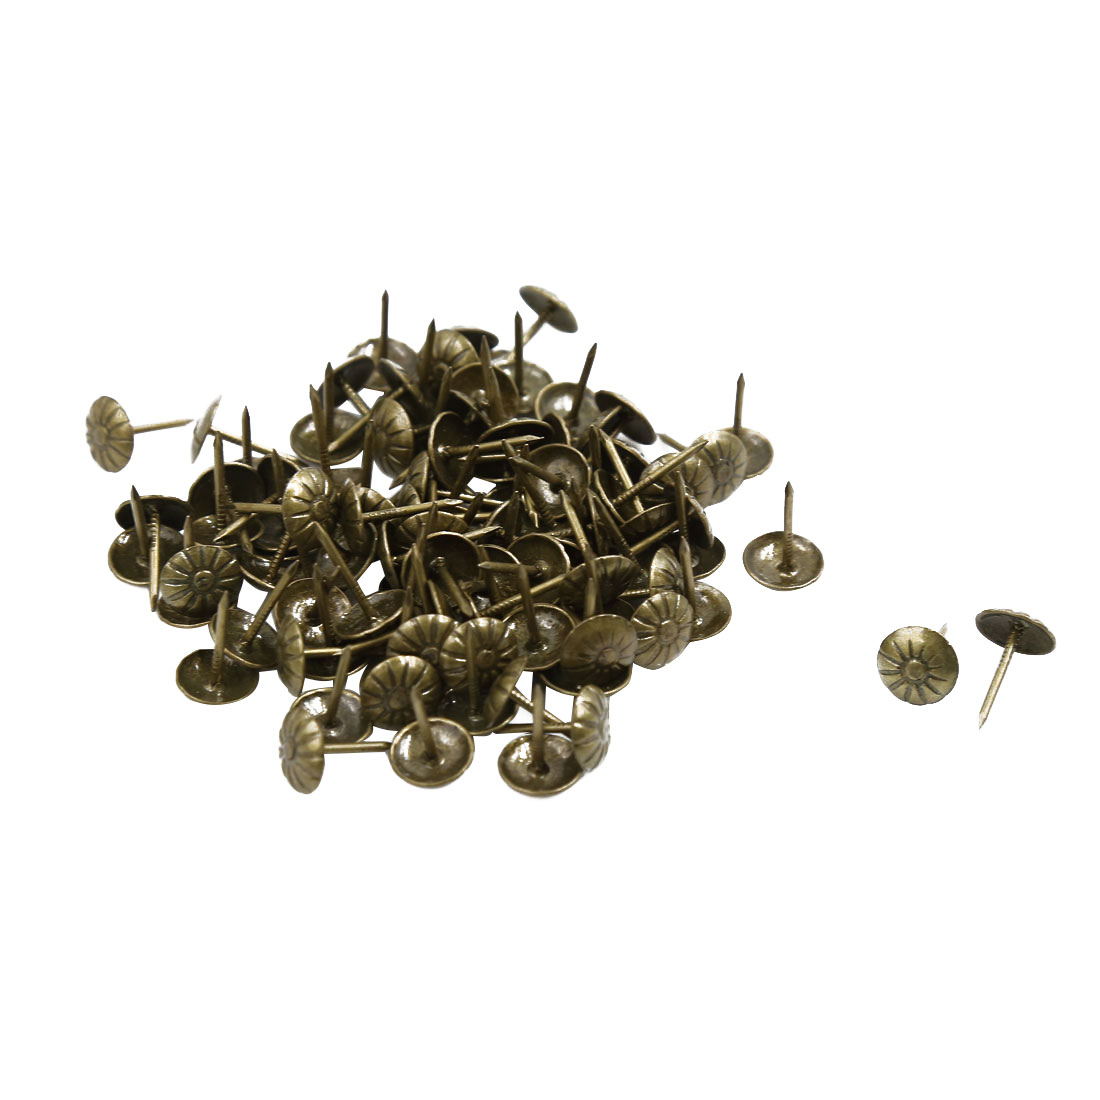 Corkboard Photo Flower Pattern Pushpin Thumb Tacks Bronze Tone 11mm Dia 100pcs